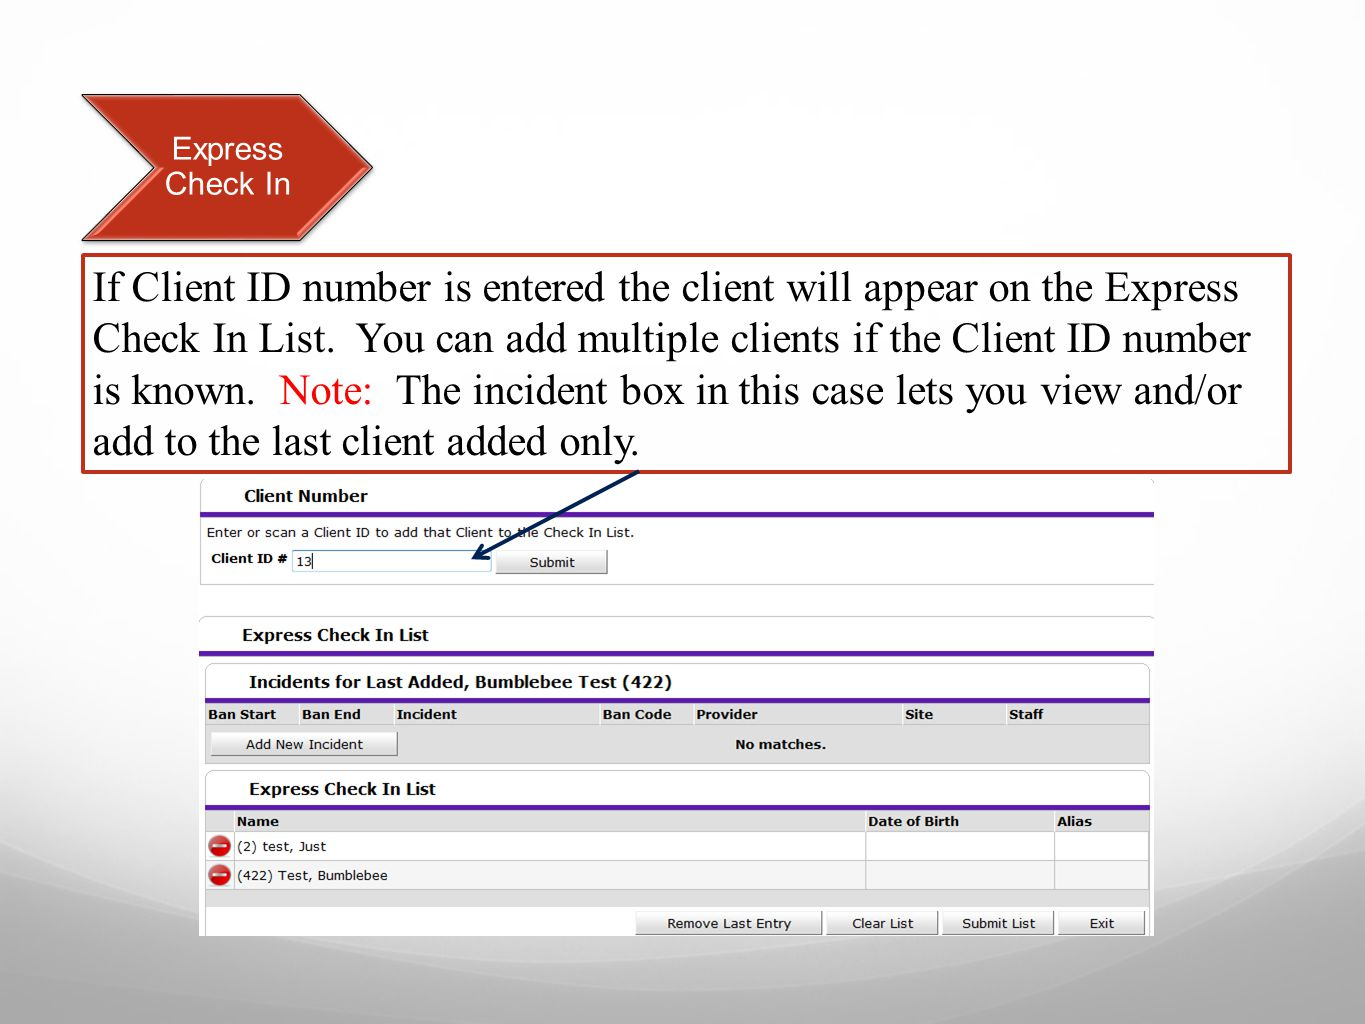 Express Check In If Client ID number is entered the client will appear on the Express Check In List.